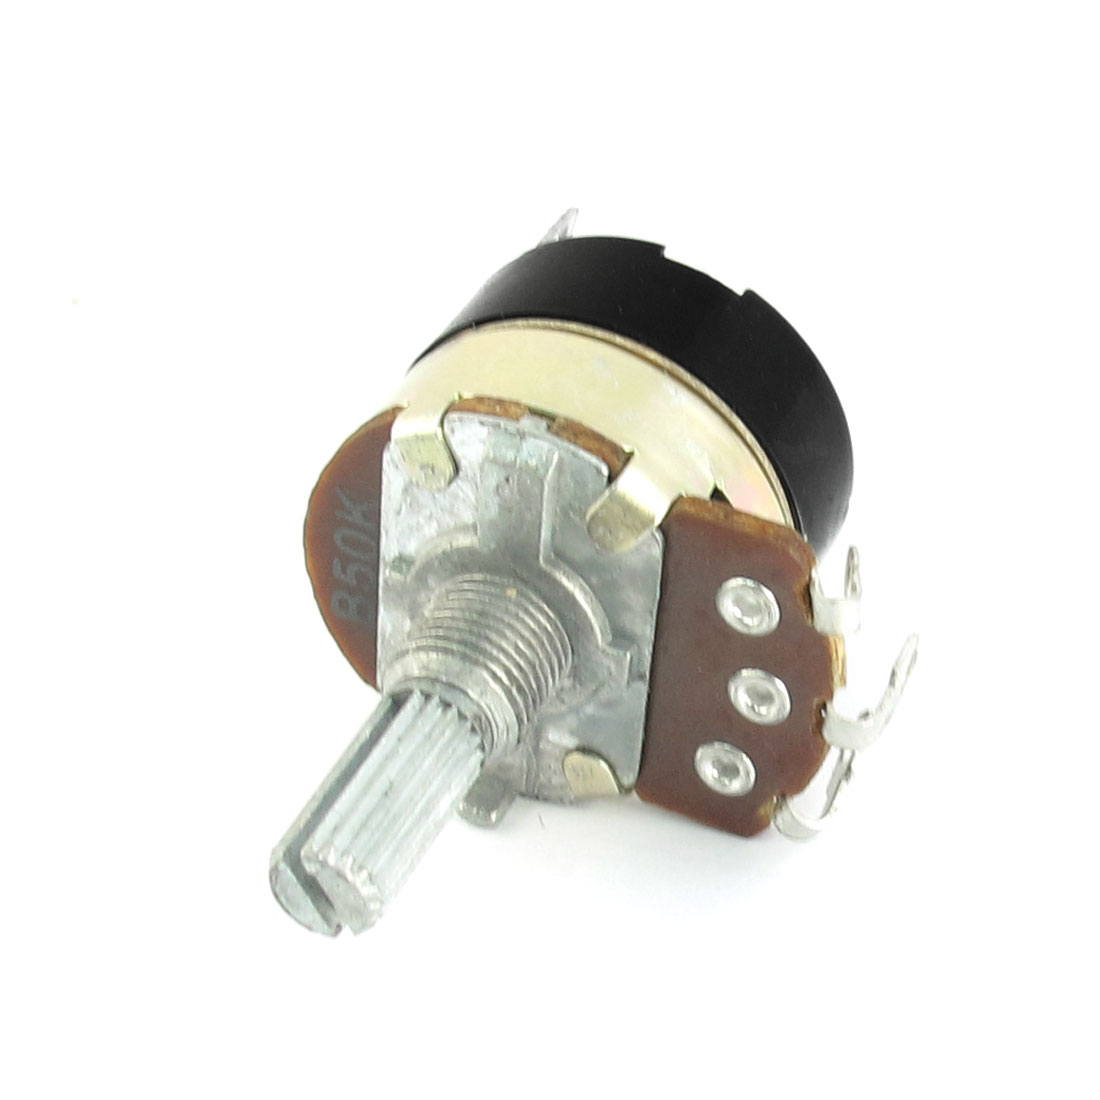 B50K 50K Ohm 6mm Knurled Shaft 8mm Dia Thread 5 Terminals Linear Rotary Taper Potentiometer Switch